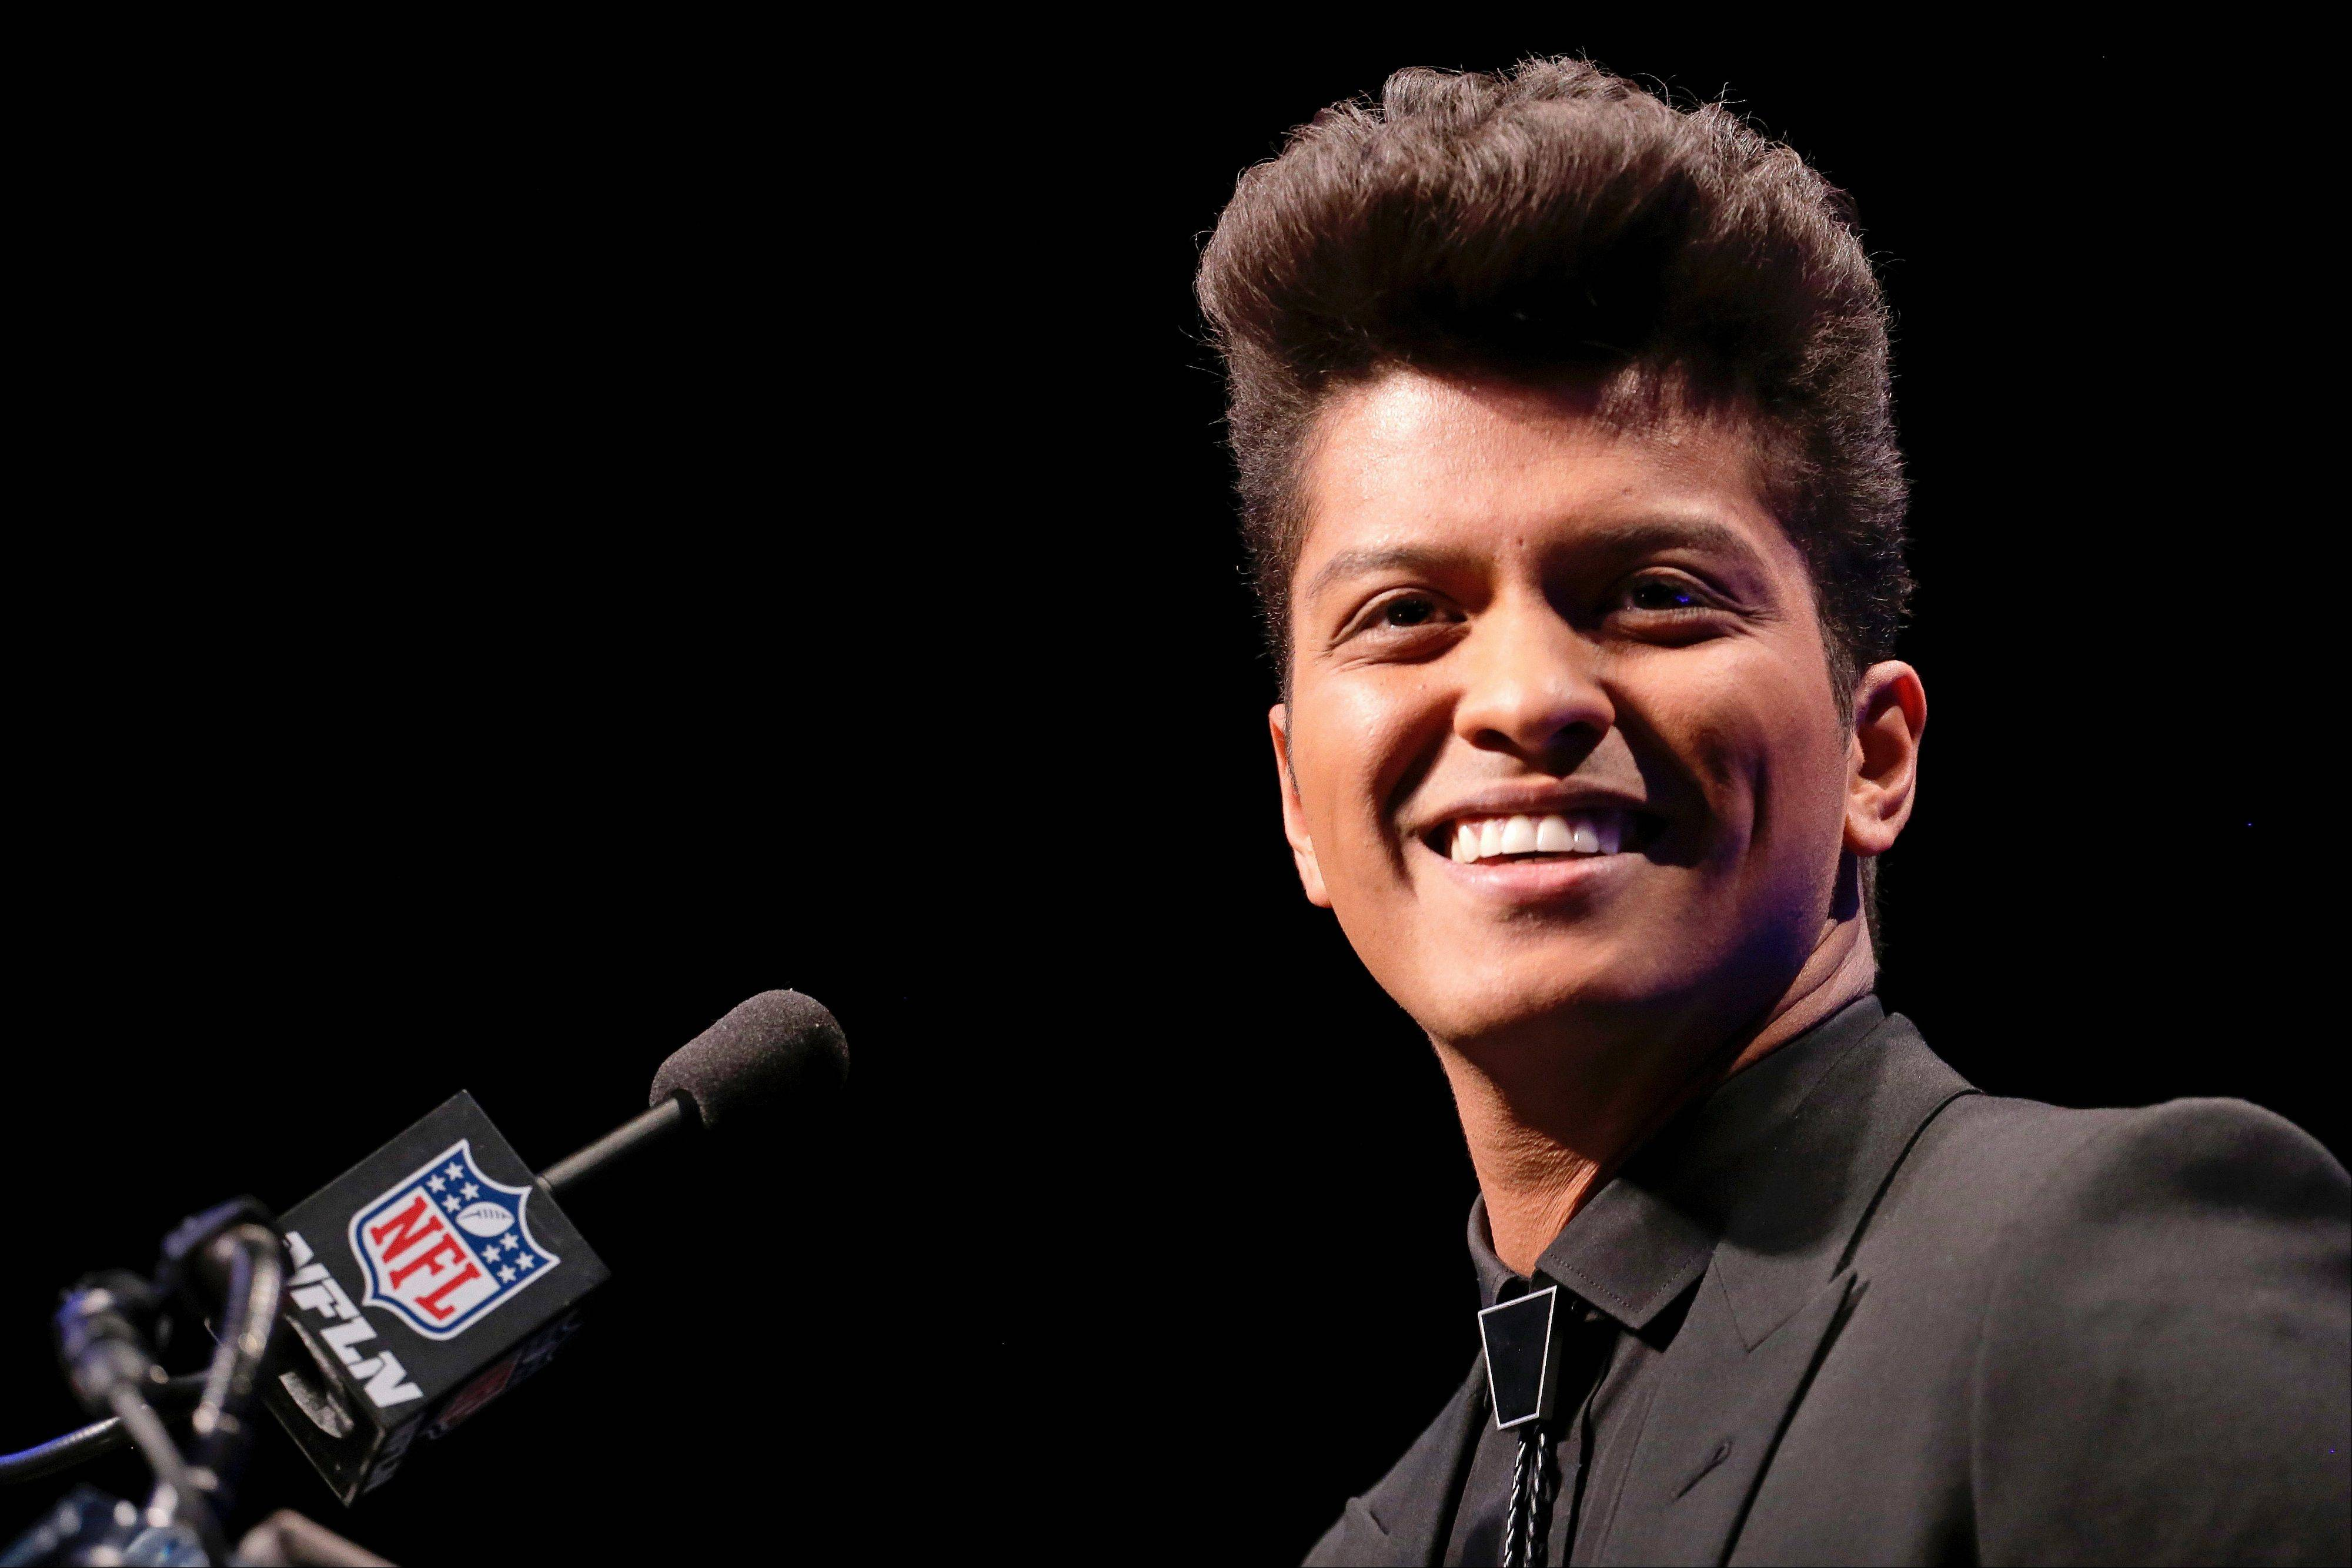 Bruno Mars says he is so grateful for the chance to perform on �such a prestigious stage,� despite the predicted cold weather.